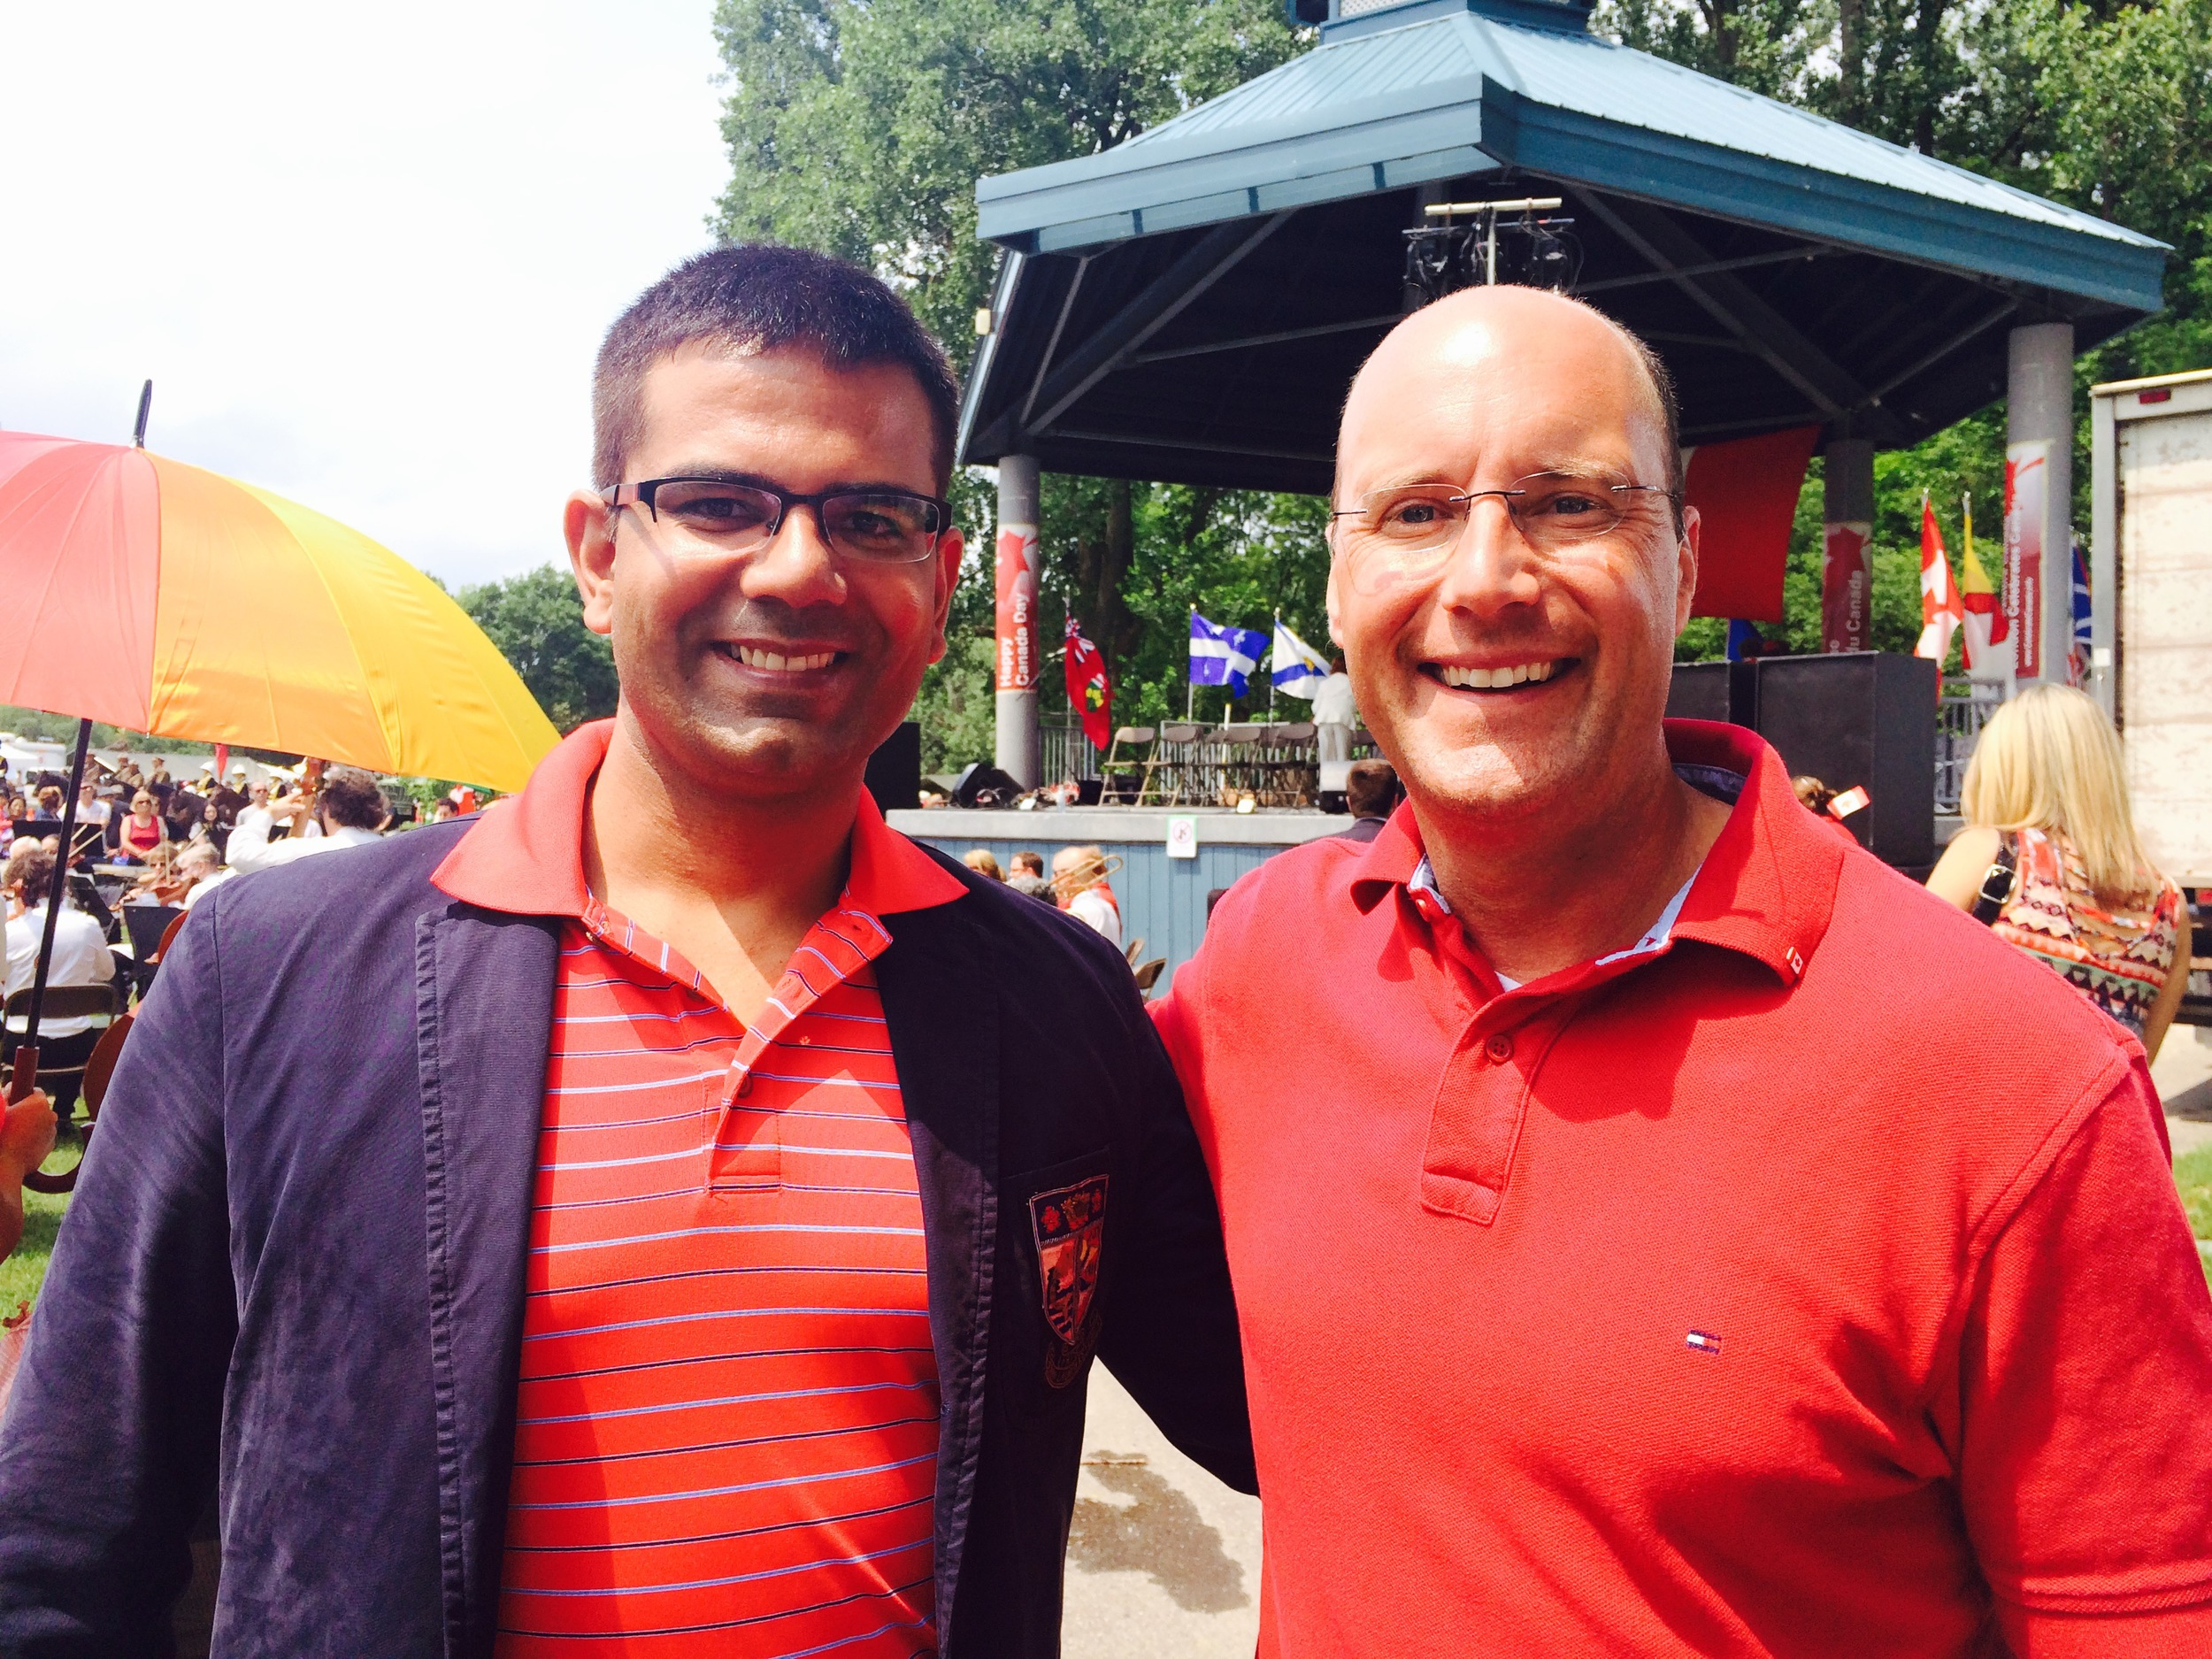 Serving as a social convenor for my clients helps them to embrace their new community and thrive in their professional and personal lives. Anshul Ruhil, Head of Research and Development, COE  at a local software company (left) and City of London Mayor Matt Brown (right), enjoy Canada Day celebrations at Harris Park this past summer.